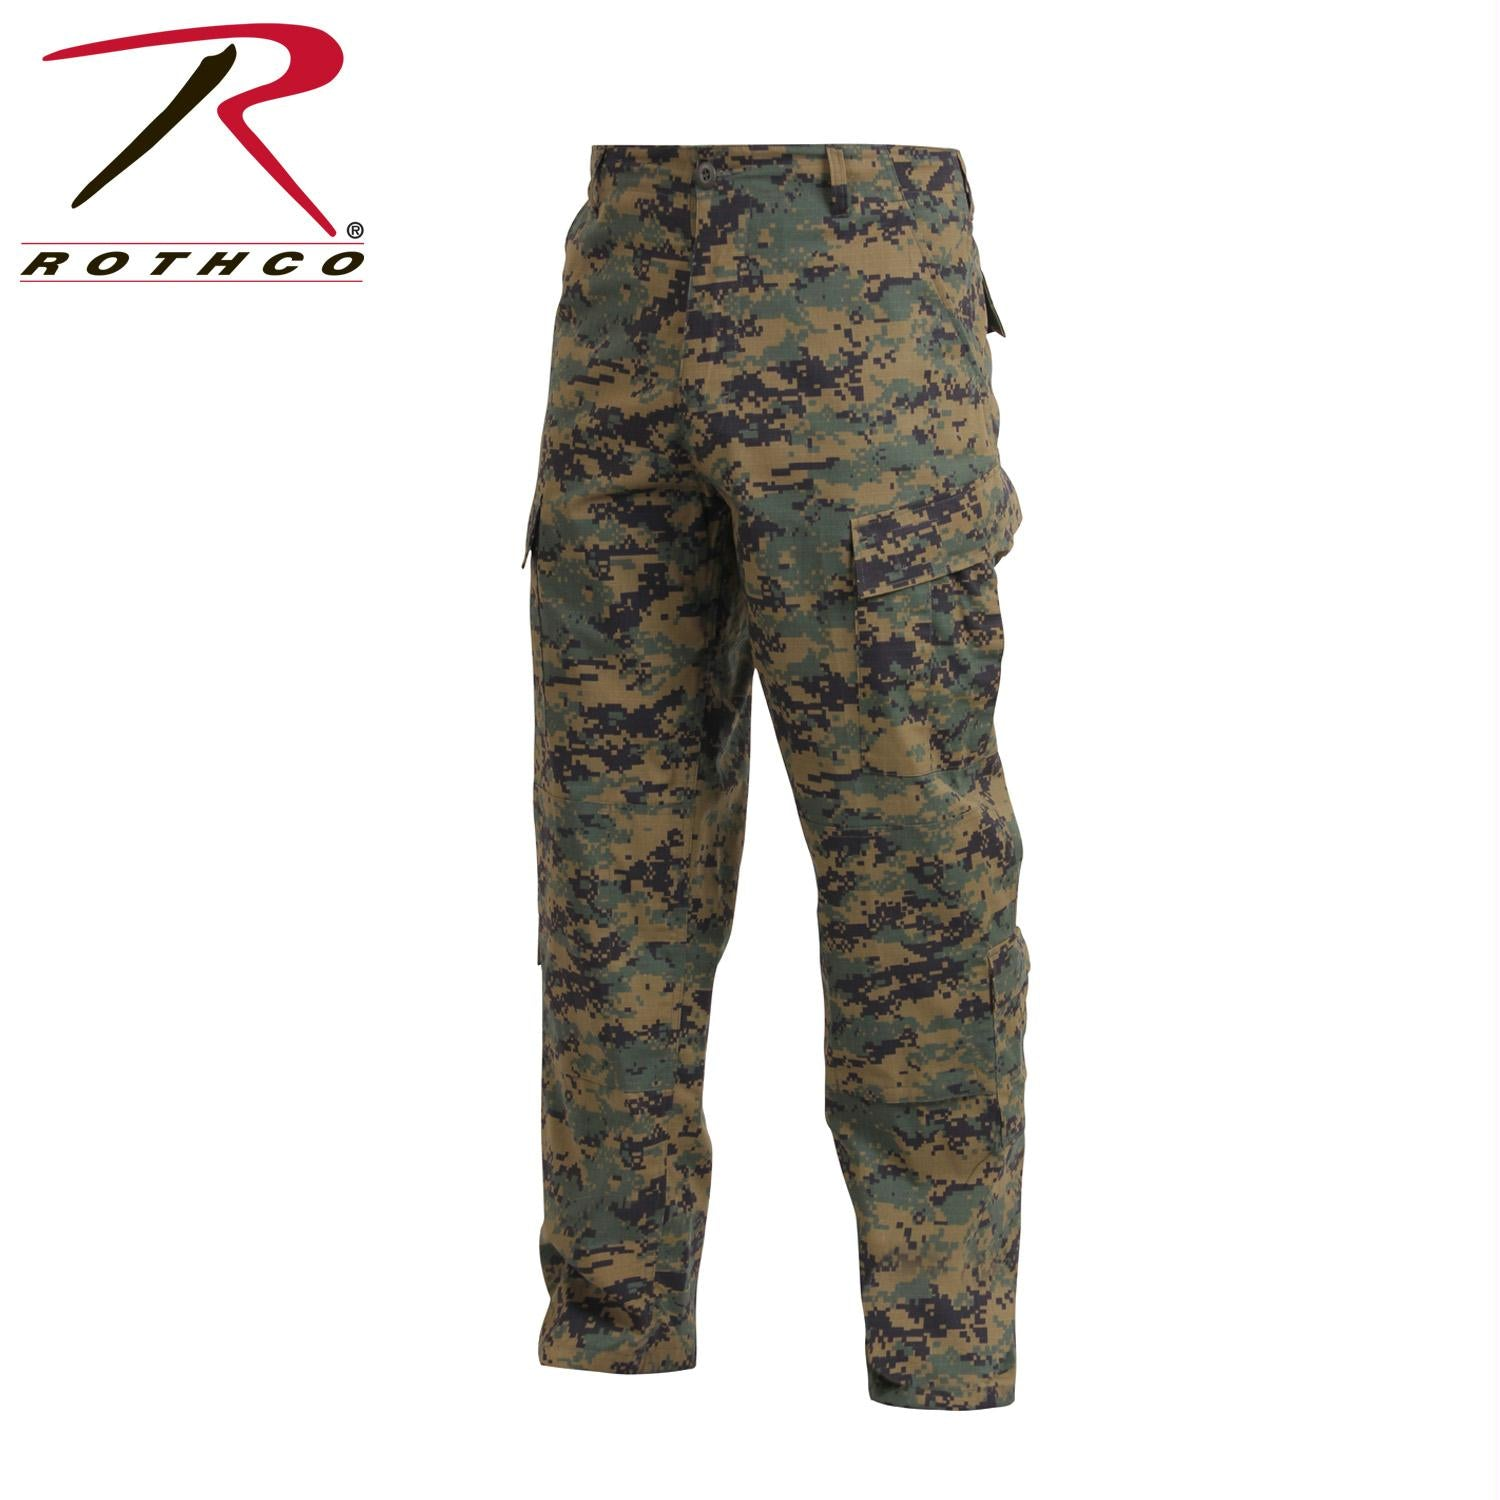 Tactical ACU Pants Rip-Stop Army Combat Uniform Fatigues - Woodland Digital Camo / L